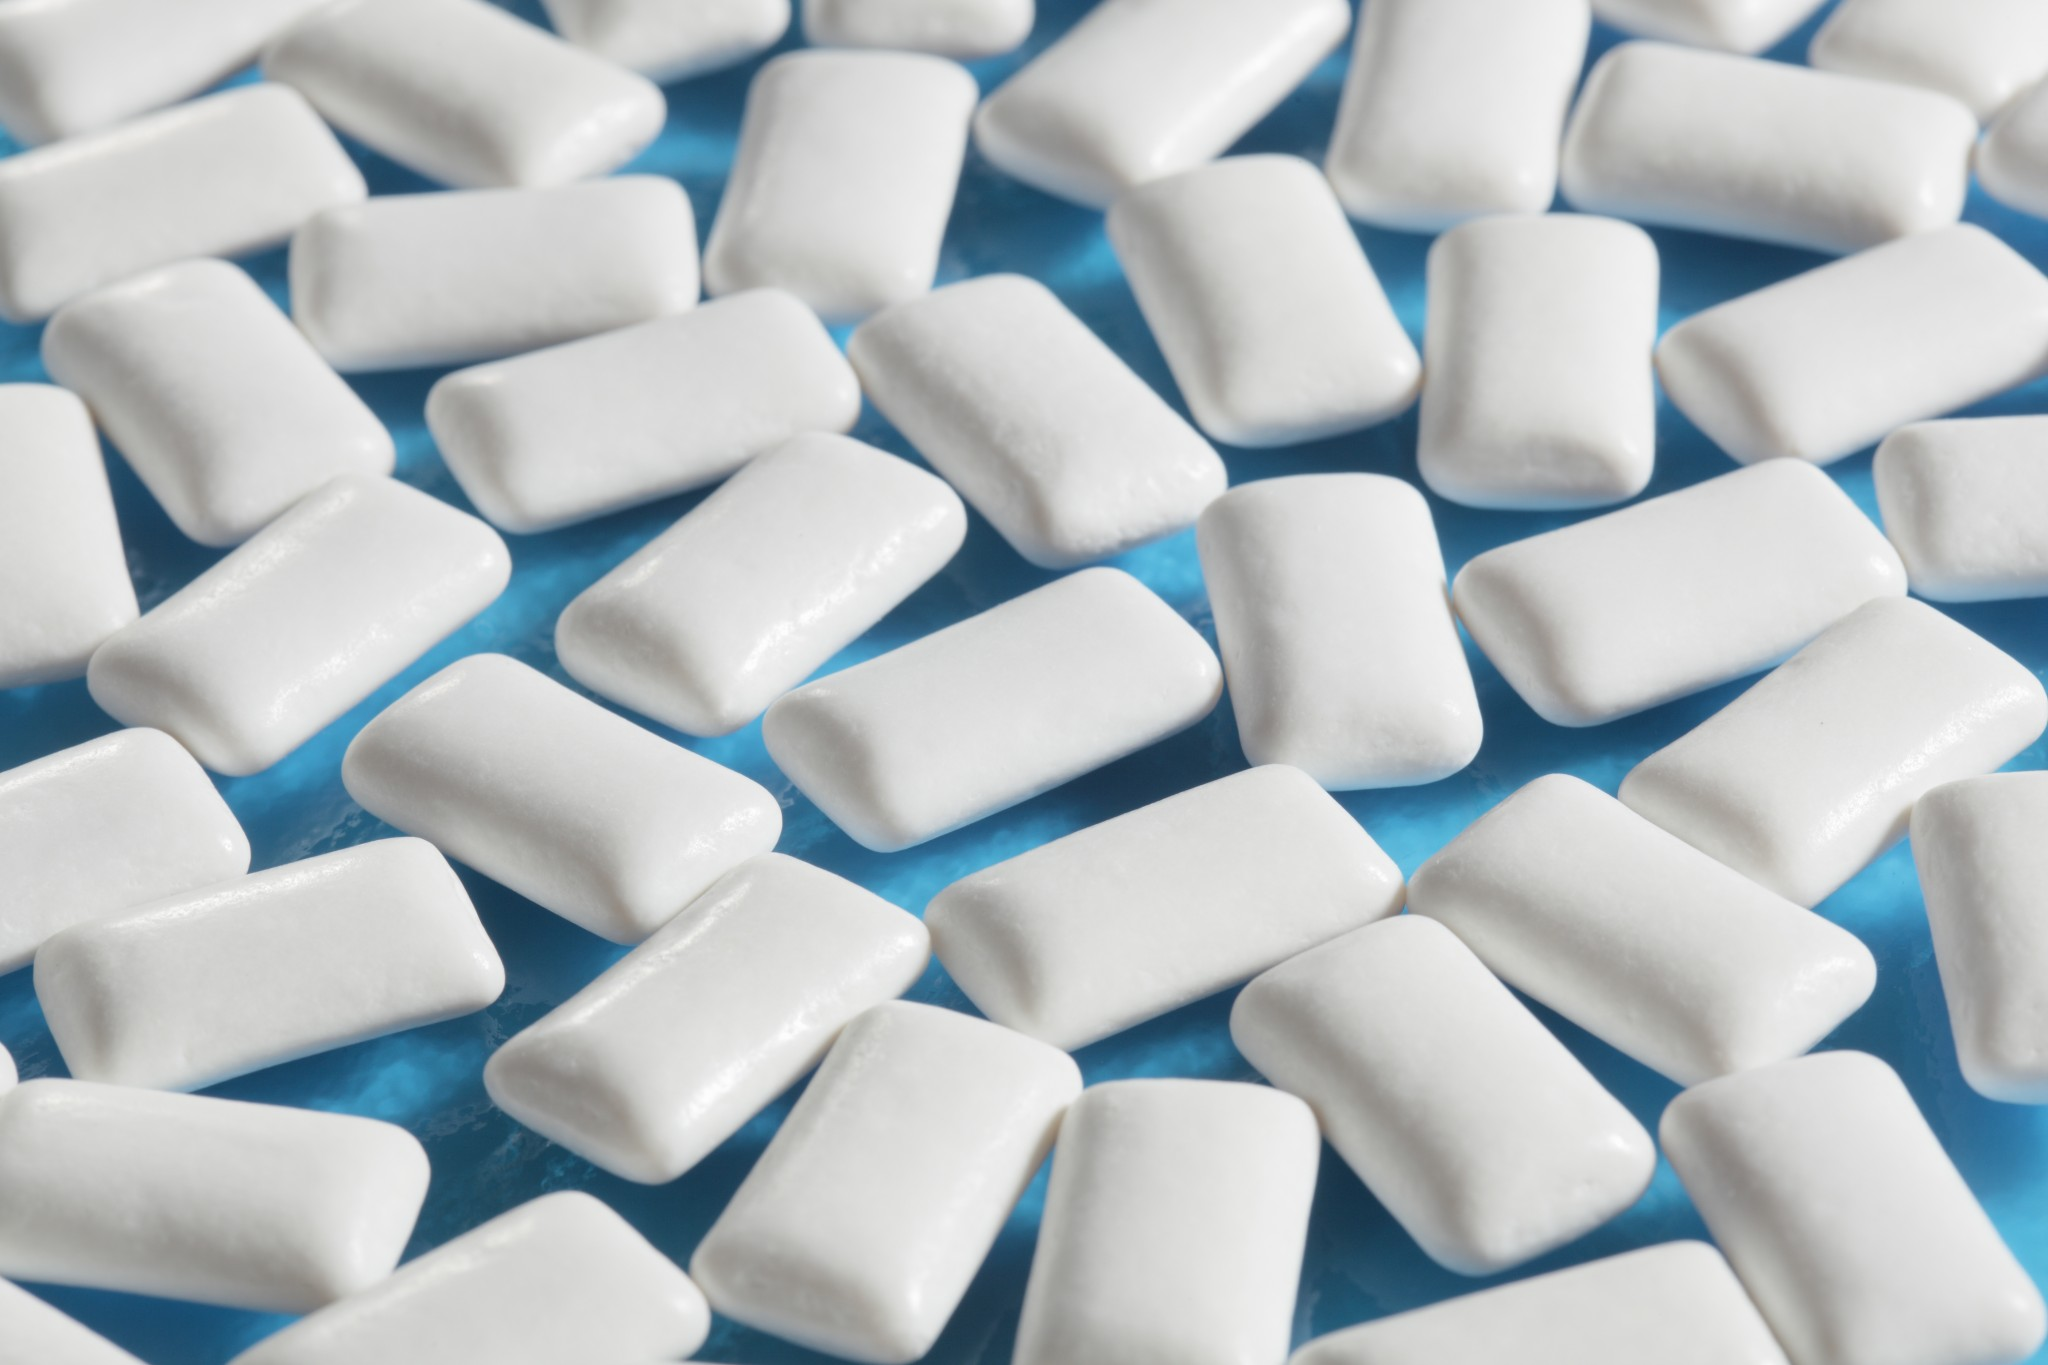 Evidence of Xylitol's Cavity-preventing Benefits Lacking